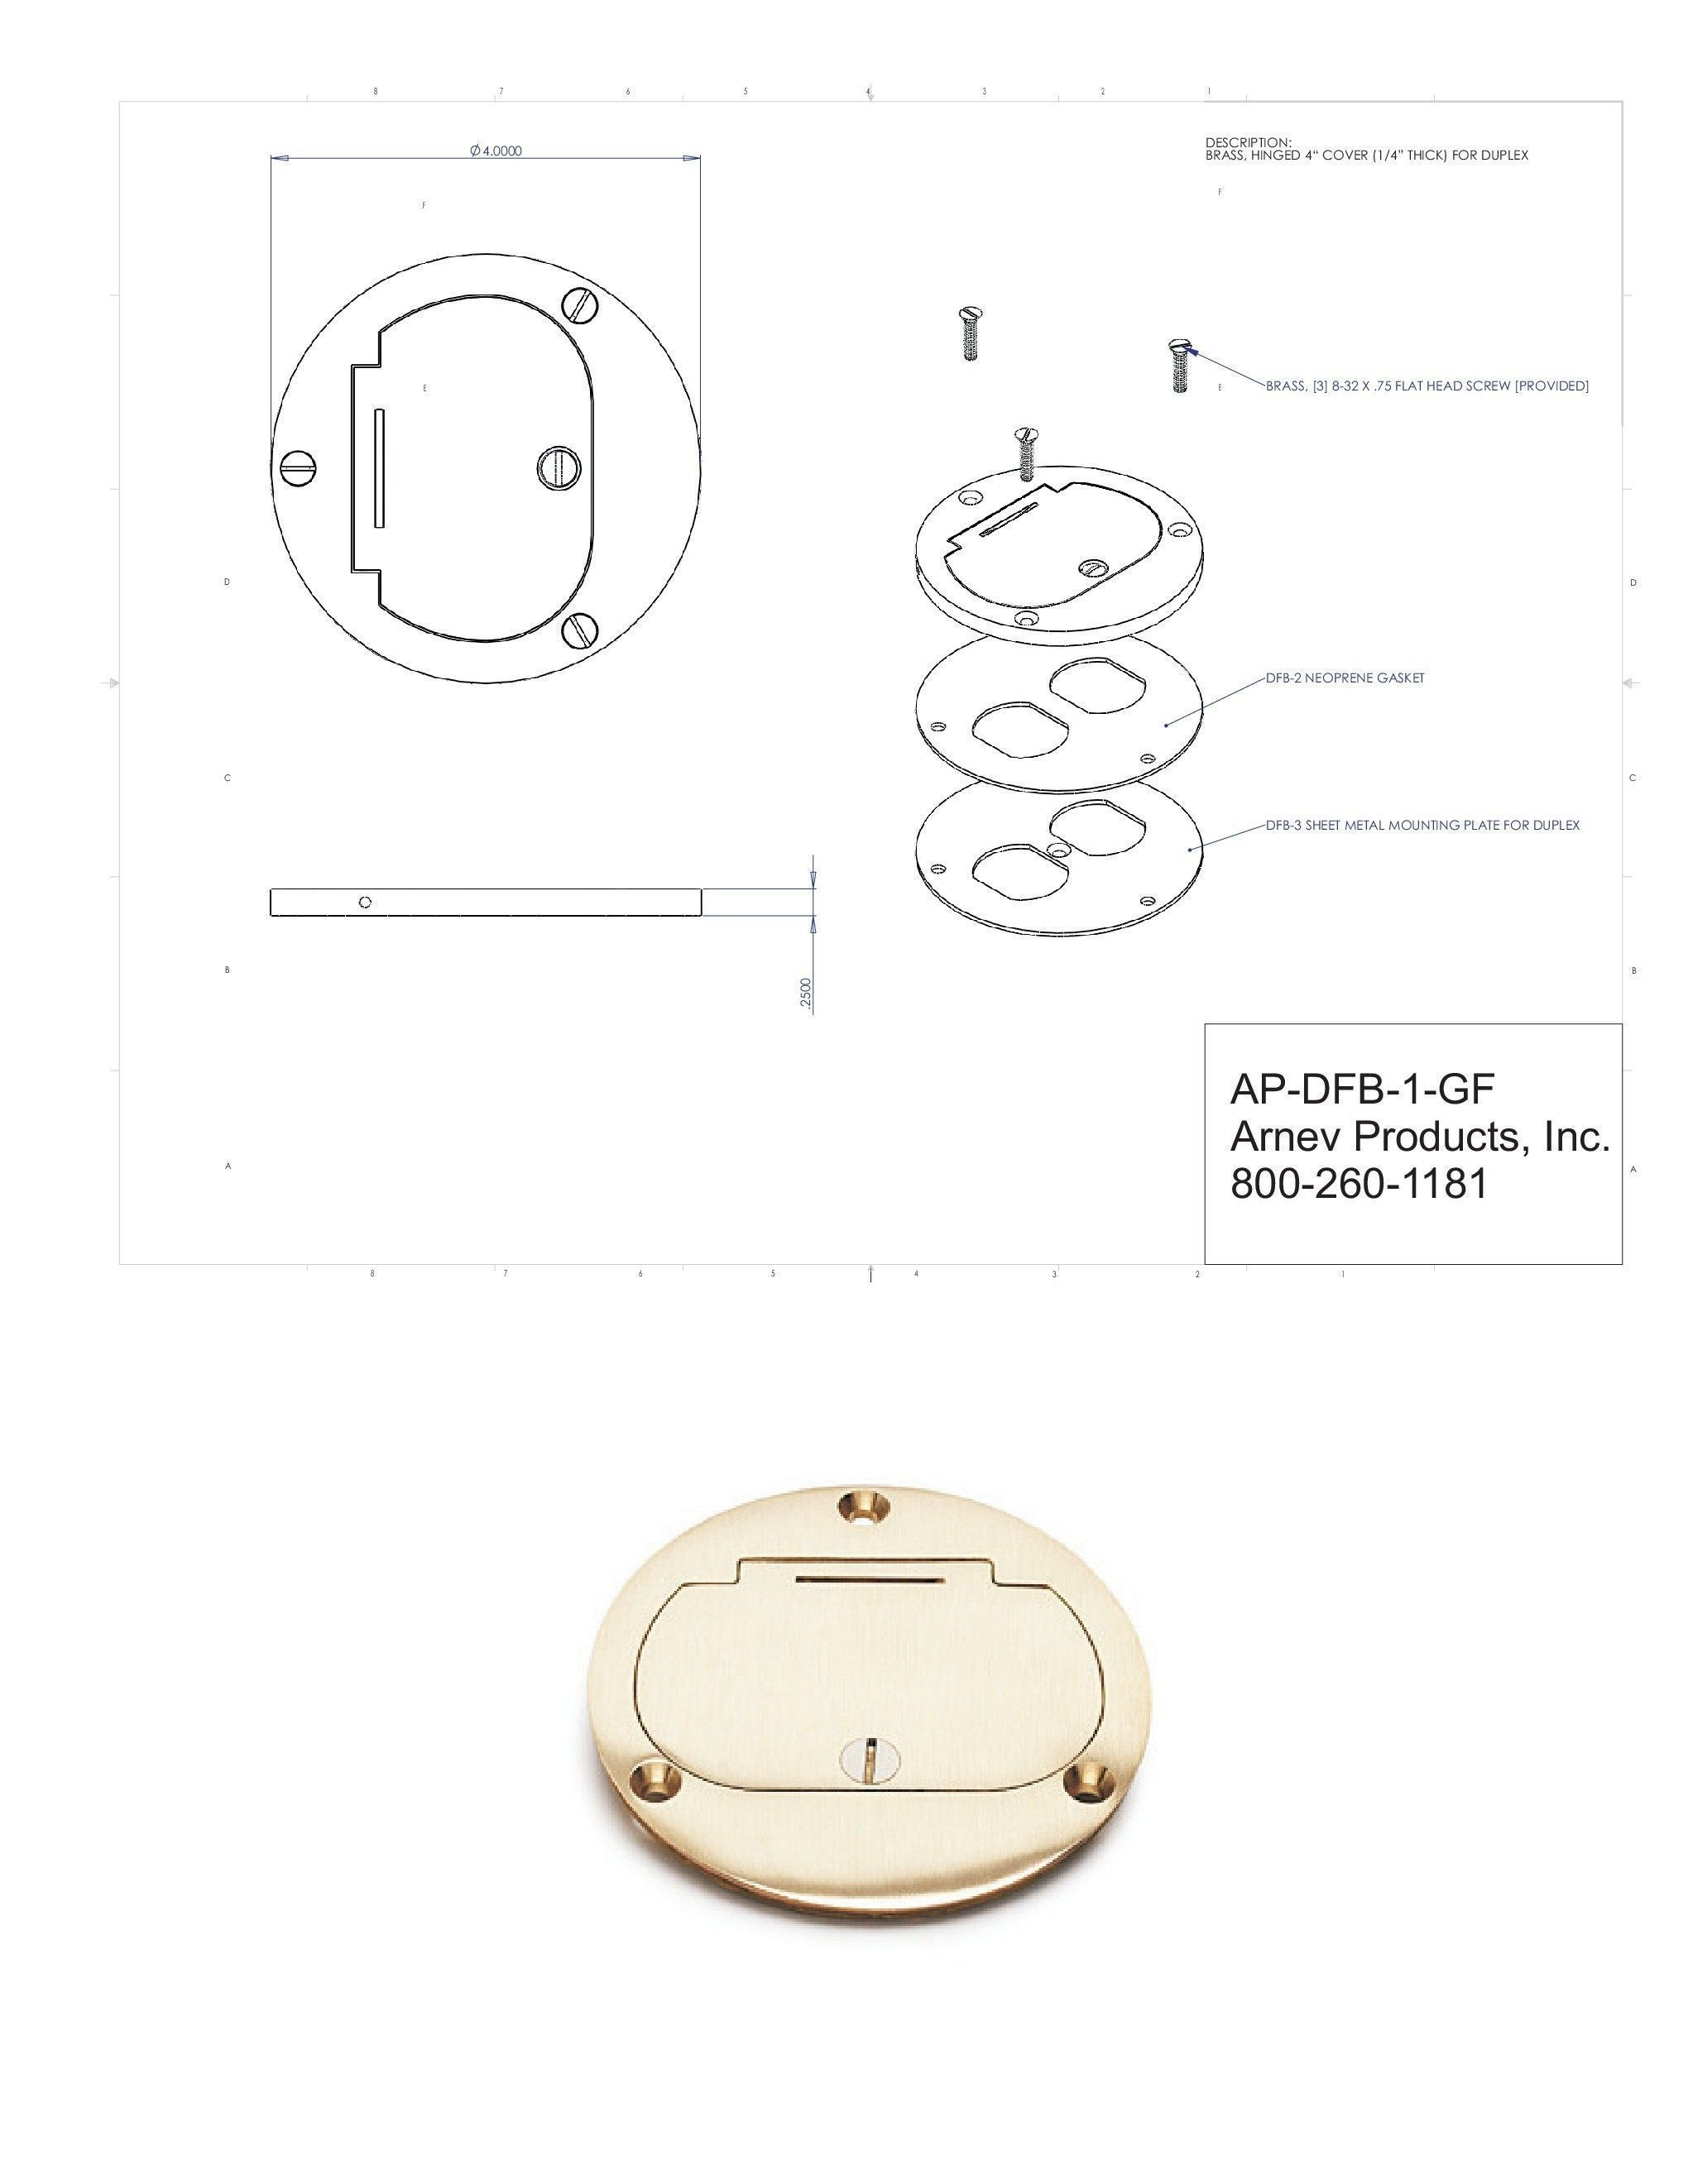 Floor Box Cover Plate : floor, cover, plate, AP-DFB-1-GFI, Concrete, Floor, Electrical, Boxes, Outlet, Junction